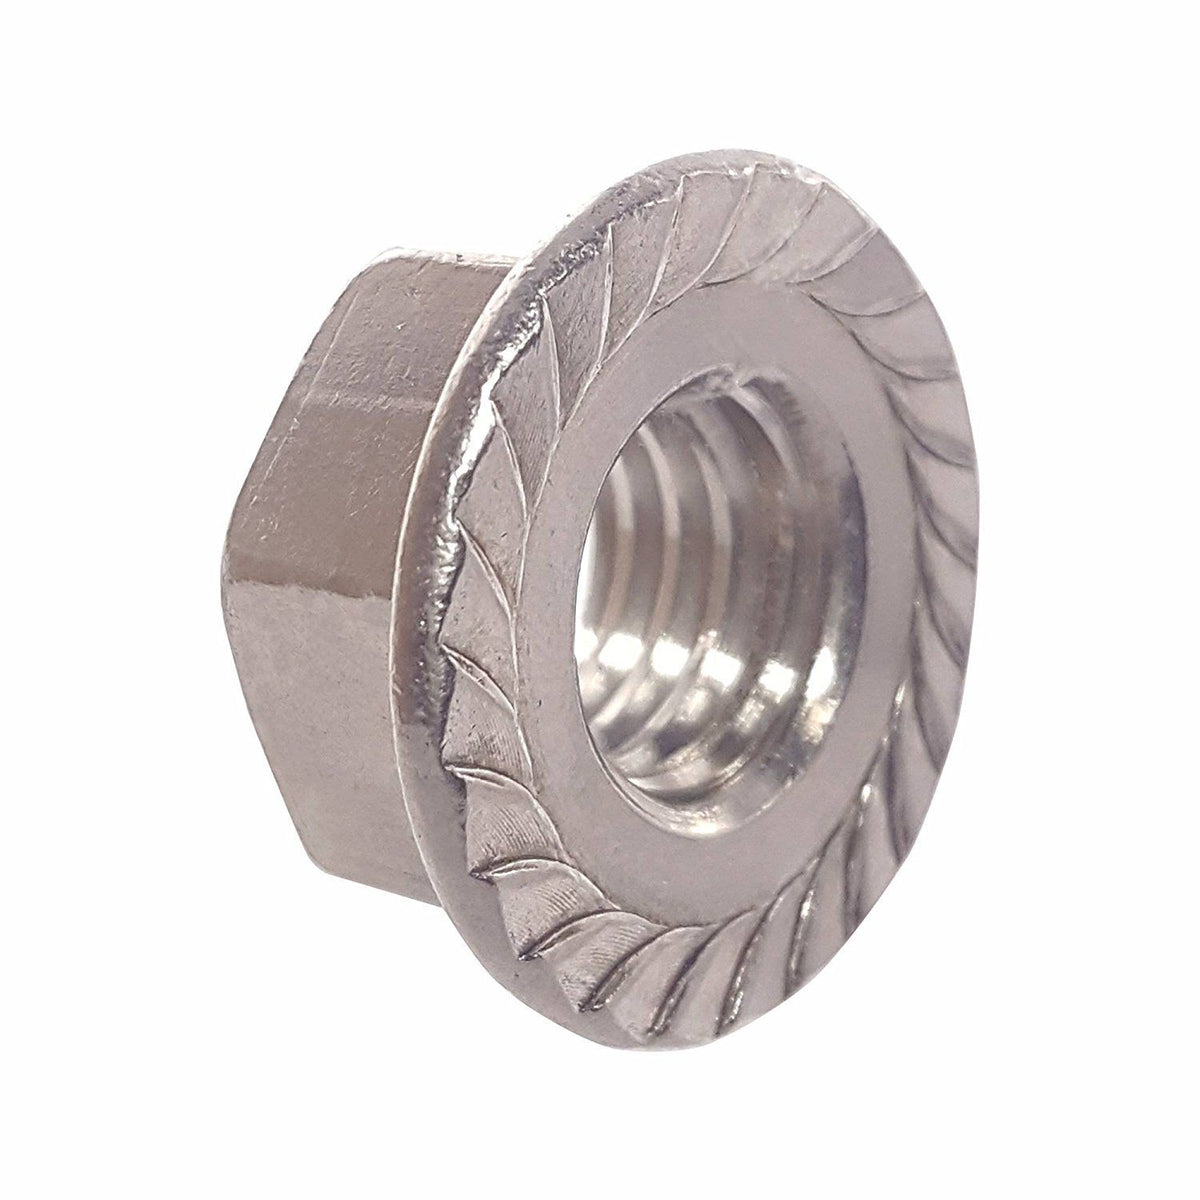 Fastenere 1 4 20 Serrated Flange Lock Nuts Stainless